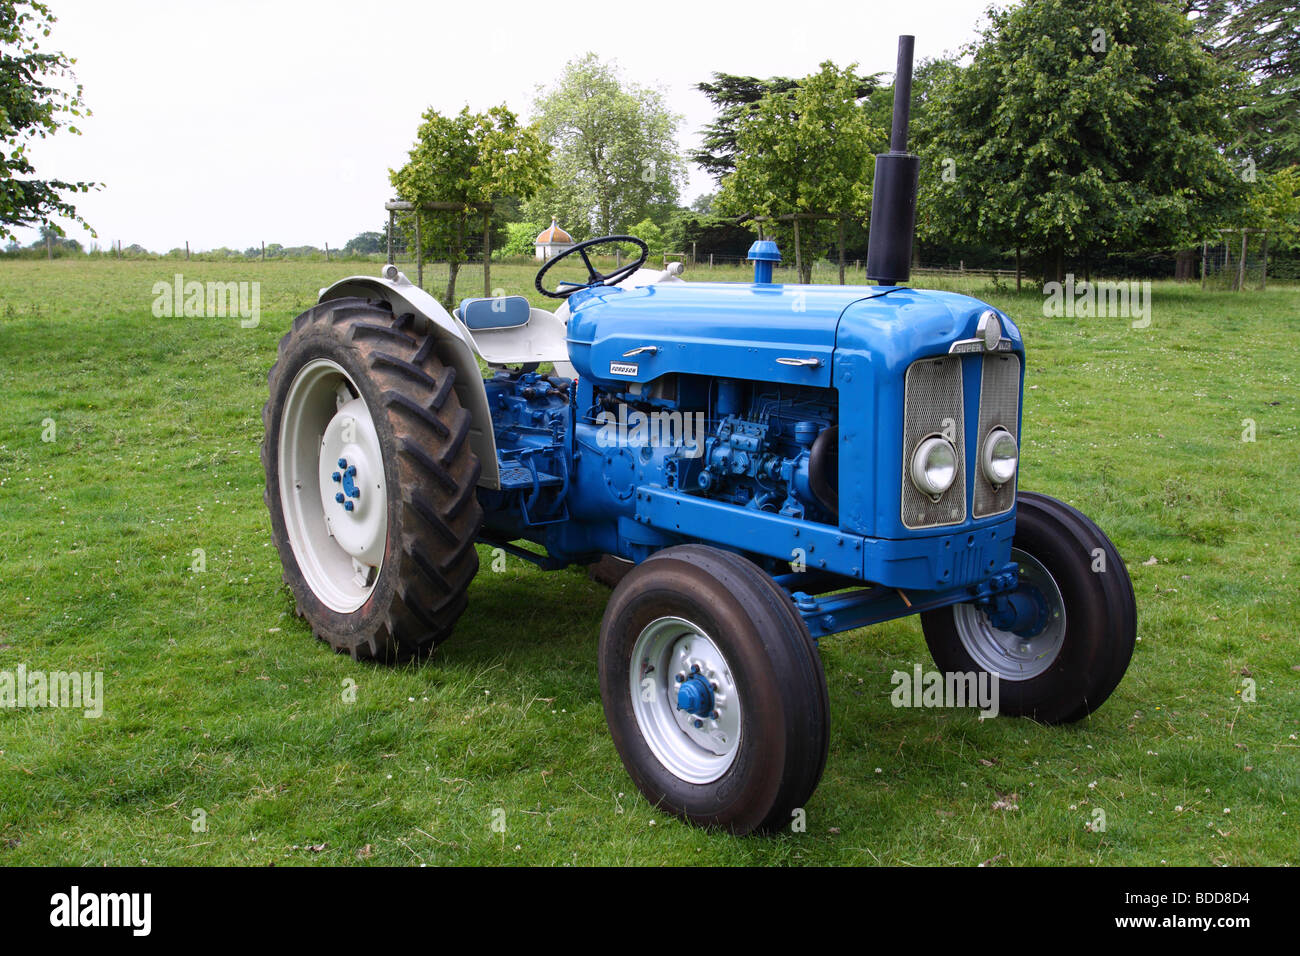 Located in S E Colorado call 719-469- one 5 two 8I have and old Fordson Major Diesel tractor for sale.